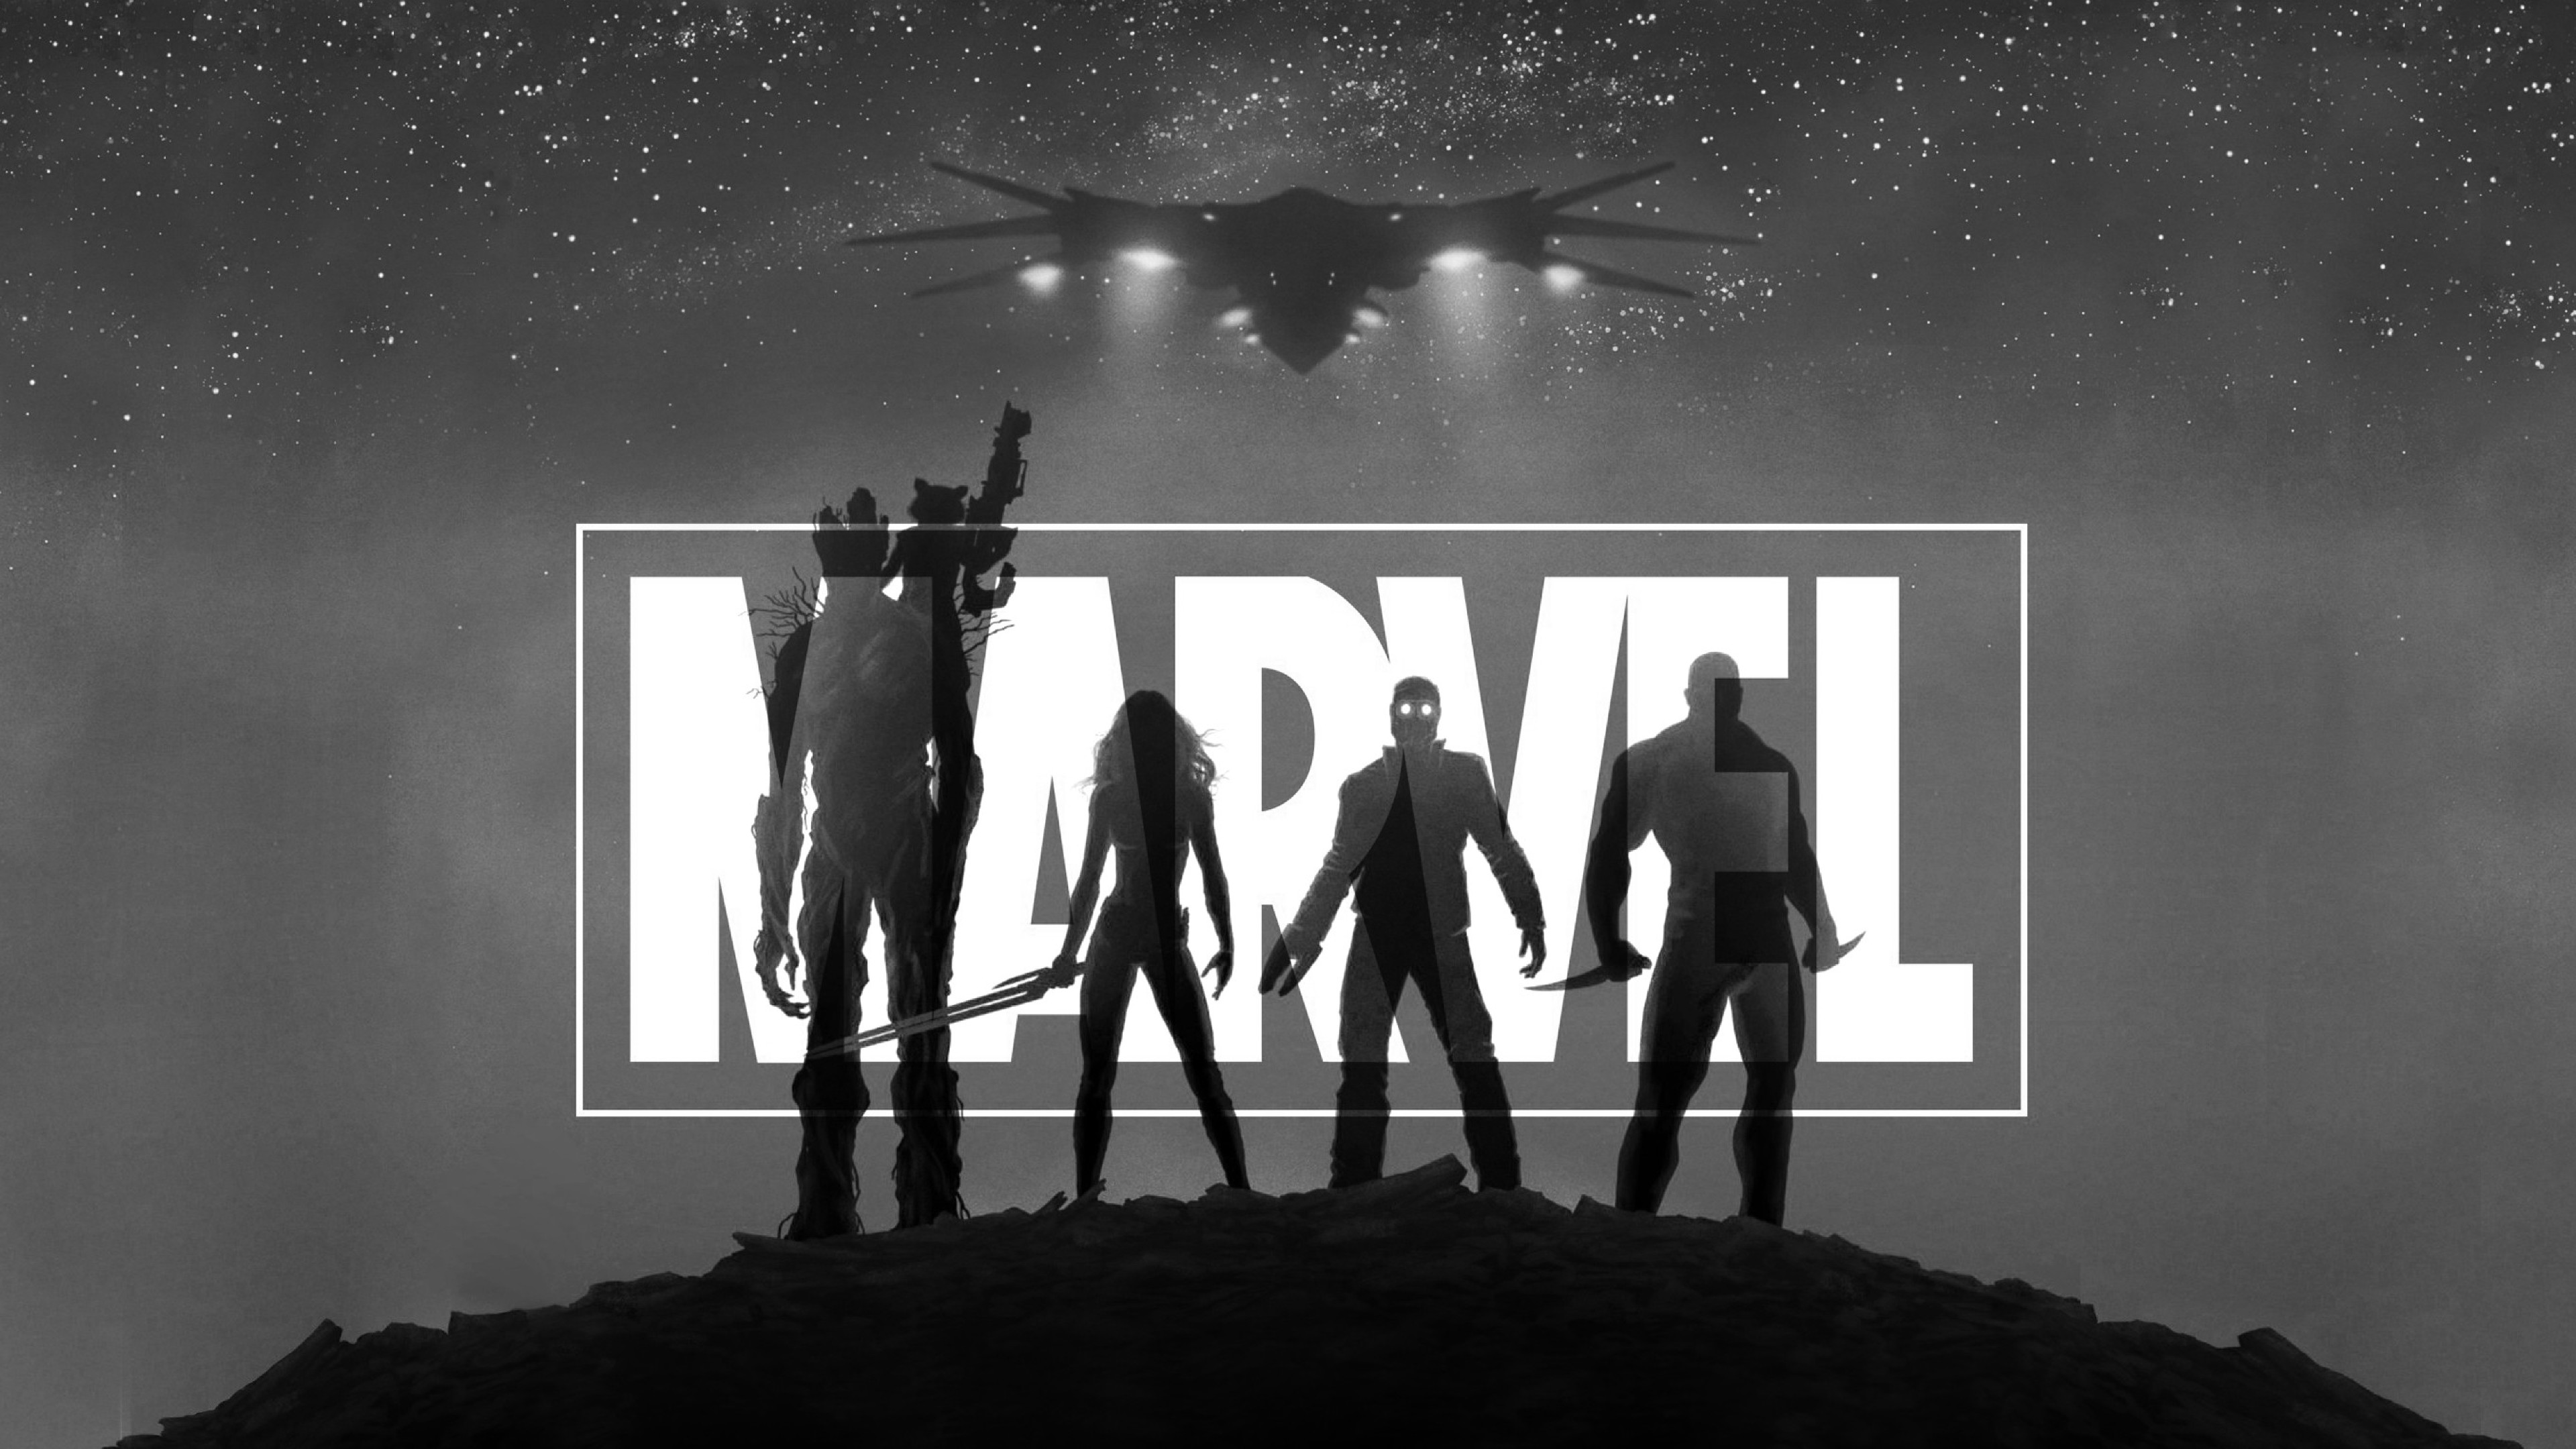 Marvel guardians of the galaxy black and white hd 4k - Guardians of the galaxy 2 8k ...